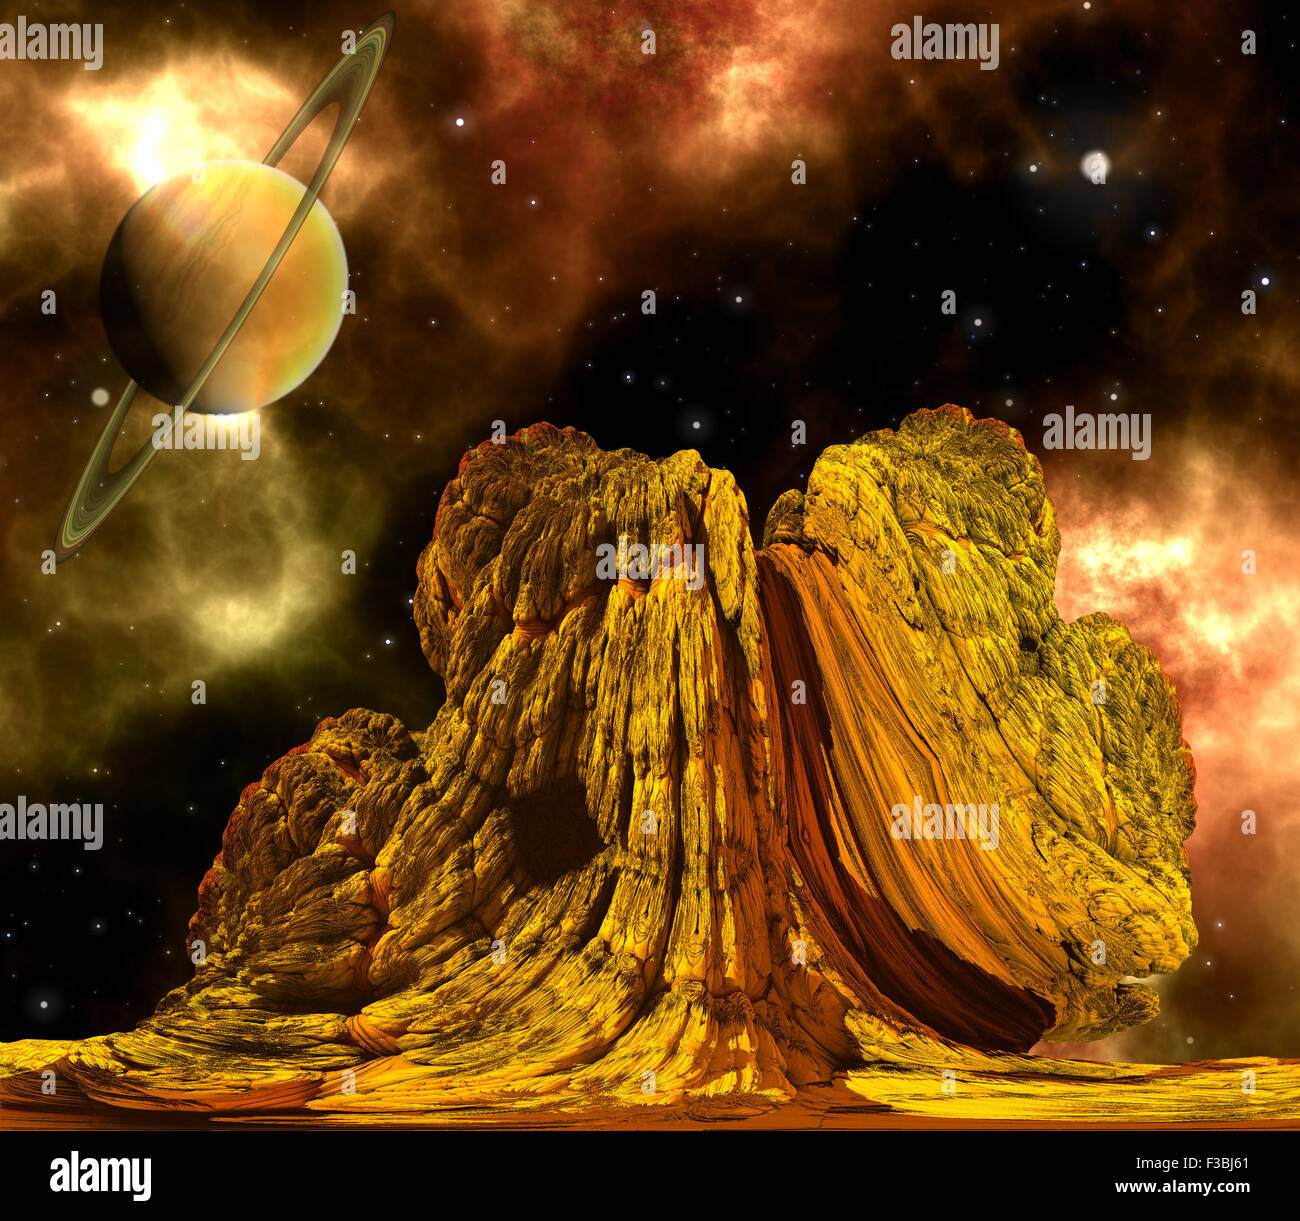 Alien Rock with space background and a brown planet - Stock Image